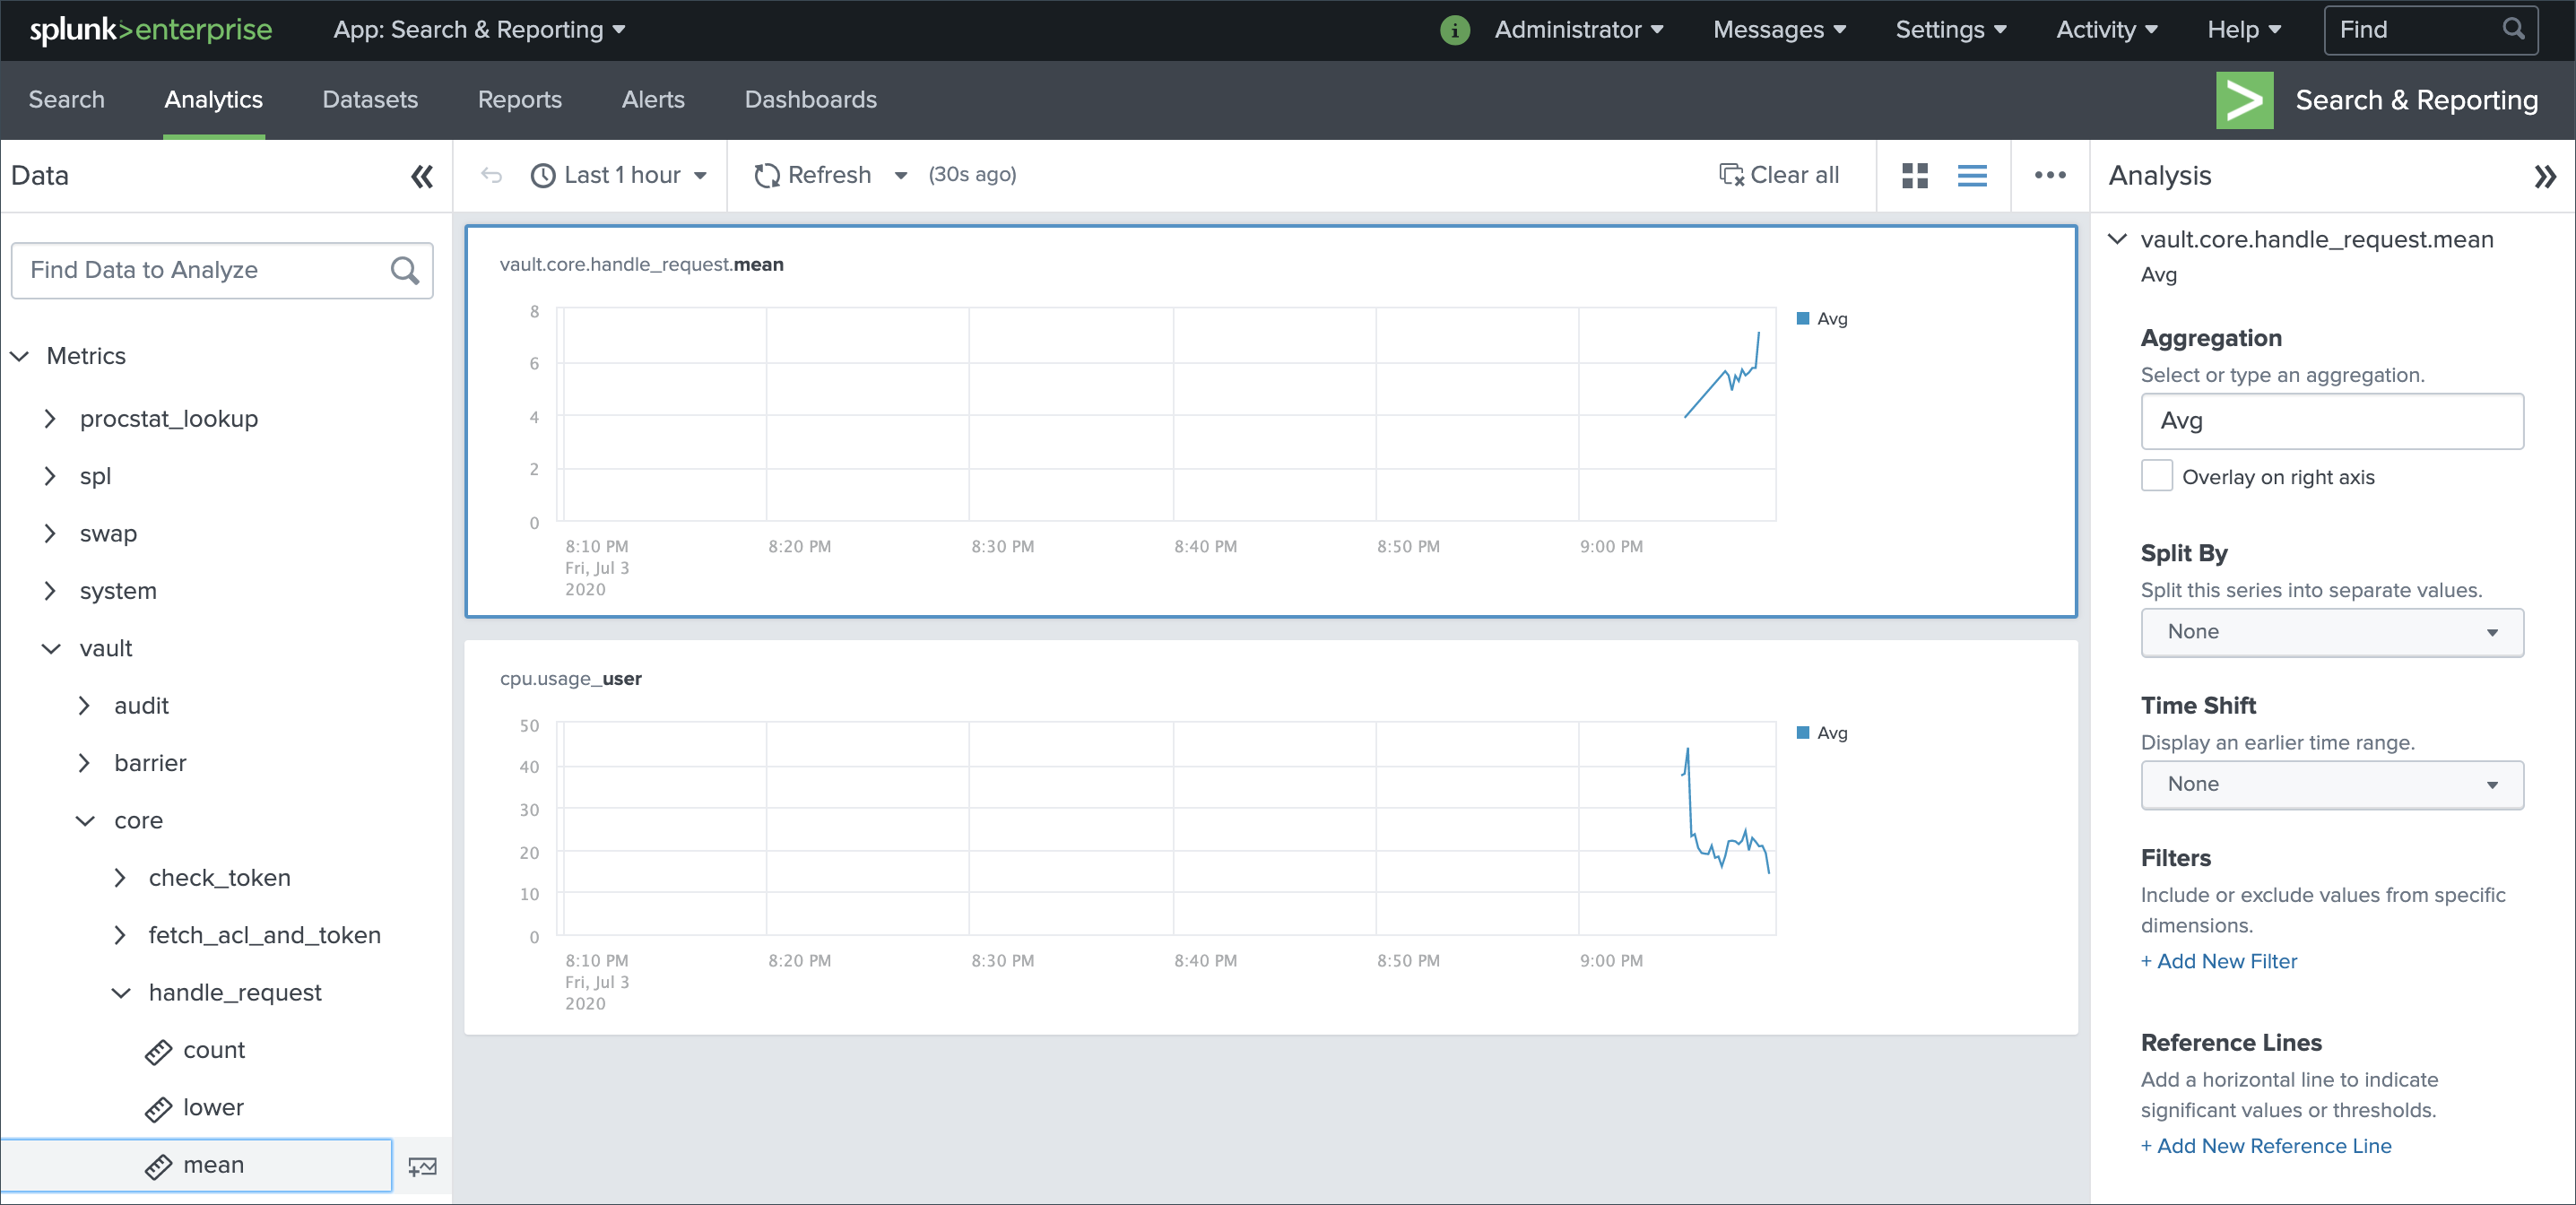 An example of Splunk analytics functionality